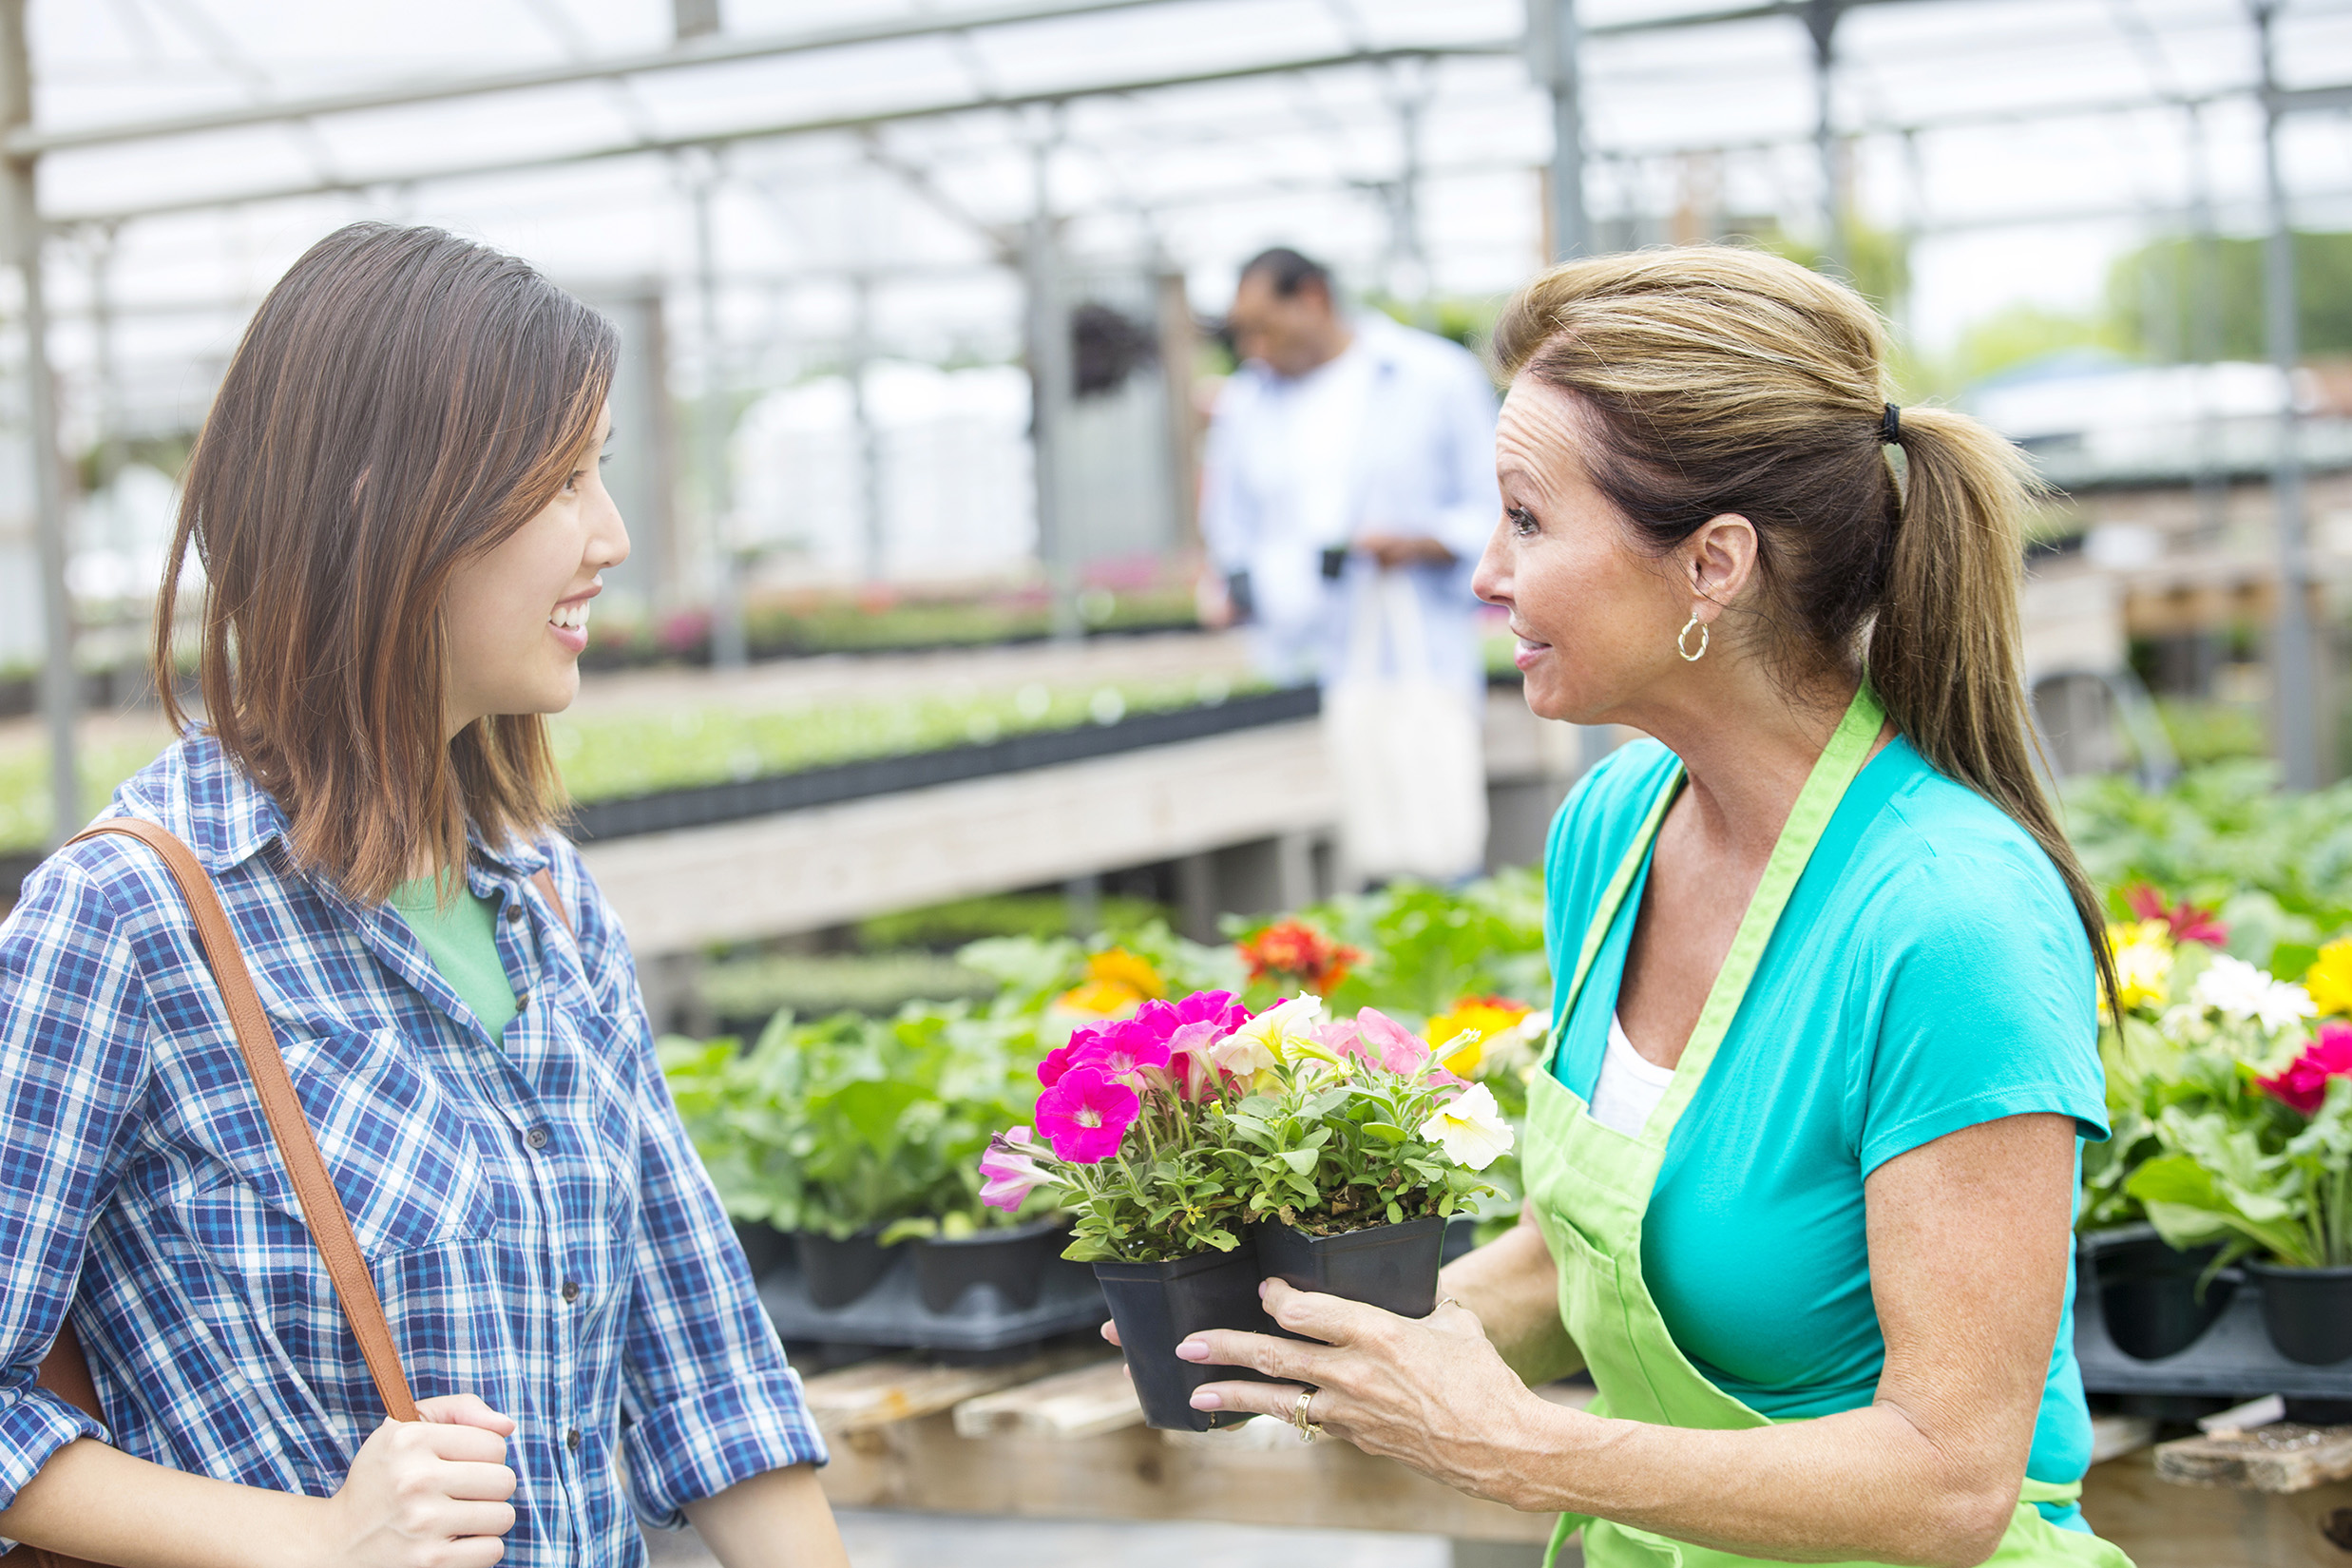 Two women stand in the middle of a garden center talking about plants